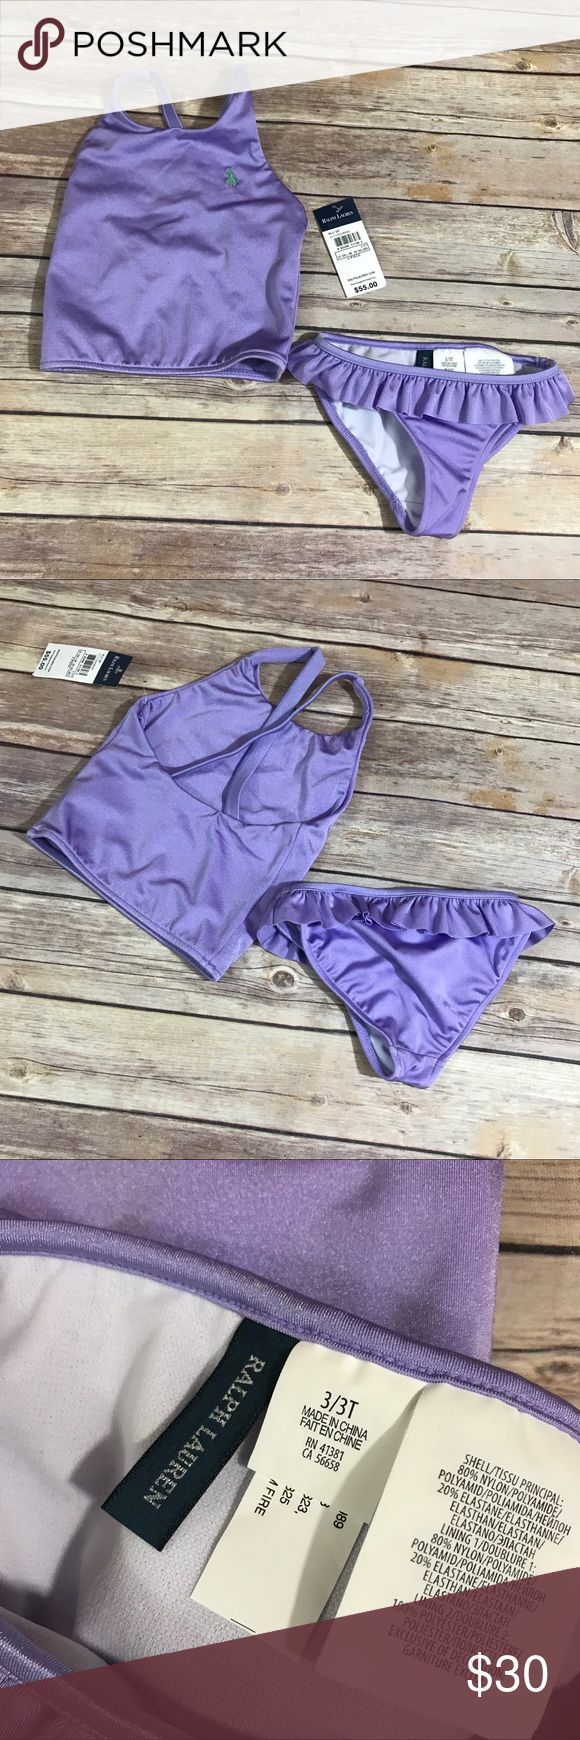 NEW NWT Ralph Lauren Lavender 2 Piece Tankini 3T NEW NWT Ralph Lauren Lavender 2 Piece Tankini 3T  Beautiful new with tags swimsuit in size 3T.  Top has two layers of the same material.  Bottoms are lined.  Ruffle on the bottom.  So cute.  #new #nwt #tankini #swimsuit #swim #tothebeach #preppy #ruffle #ruffles #ralphlauren #lavender #letsswim #bythepool Ralph Lauren Swim Bikinis